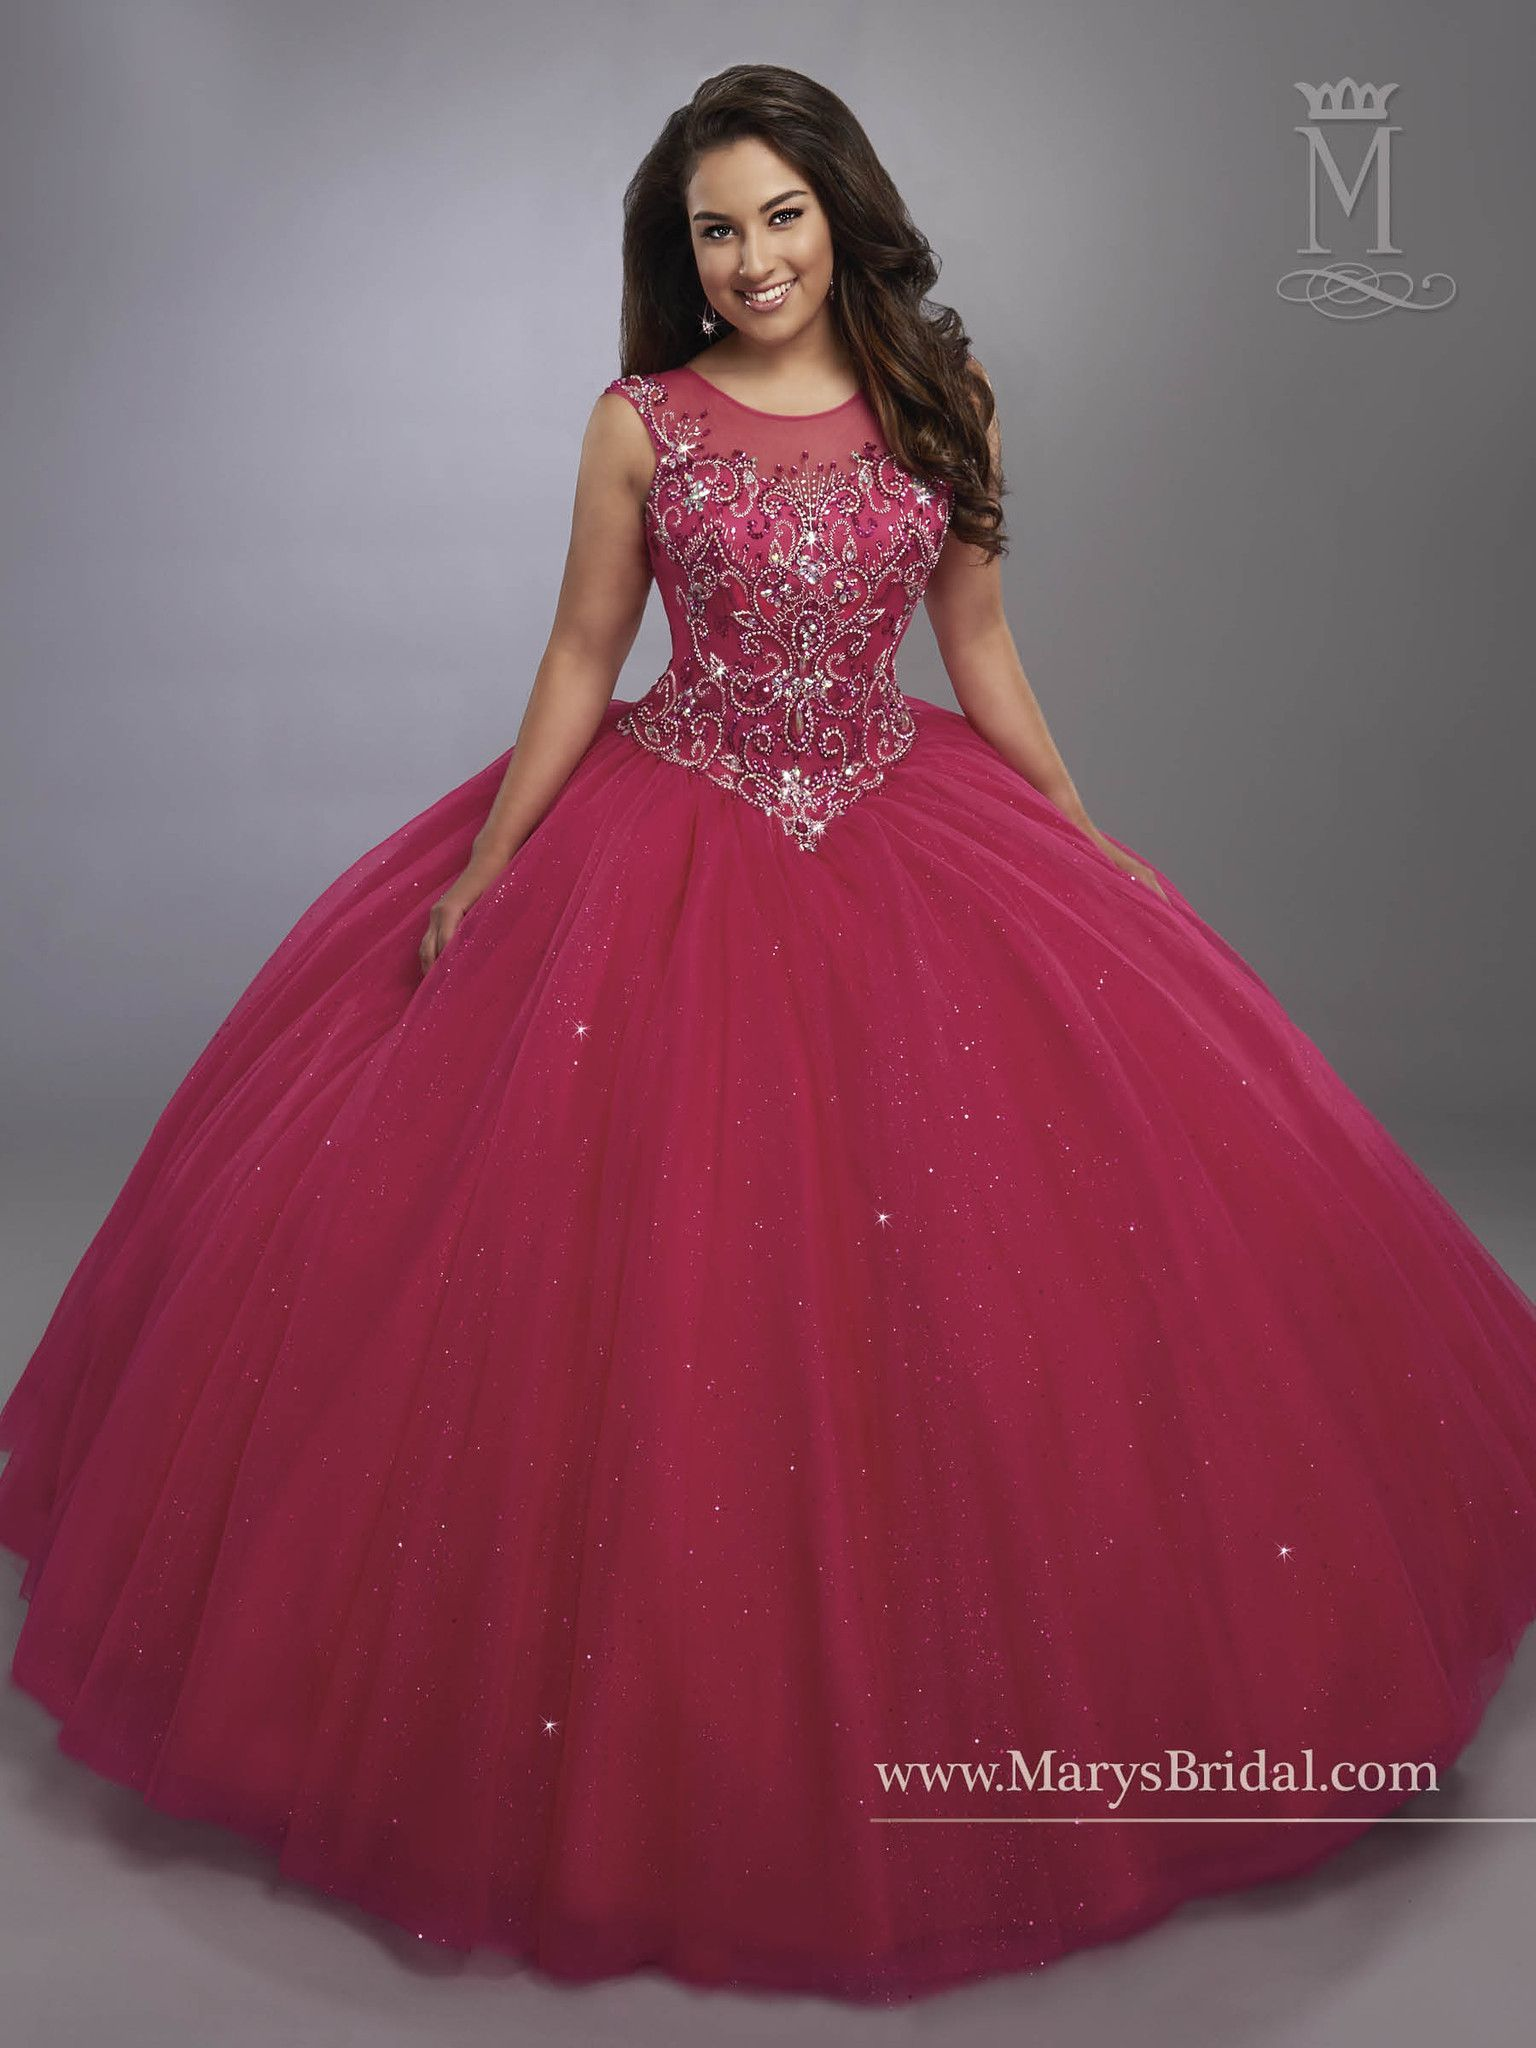 9fd60e7d52e Mary s Bridal Beloving Collection Quinceanera Dress Style 4764 in ...